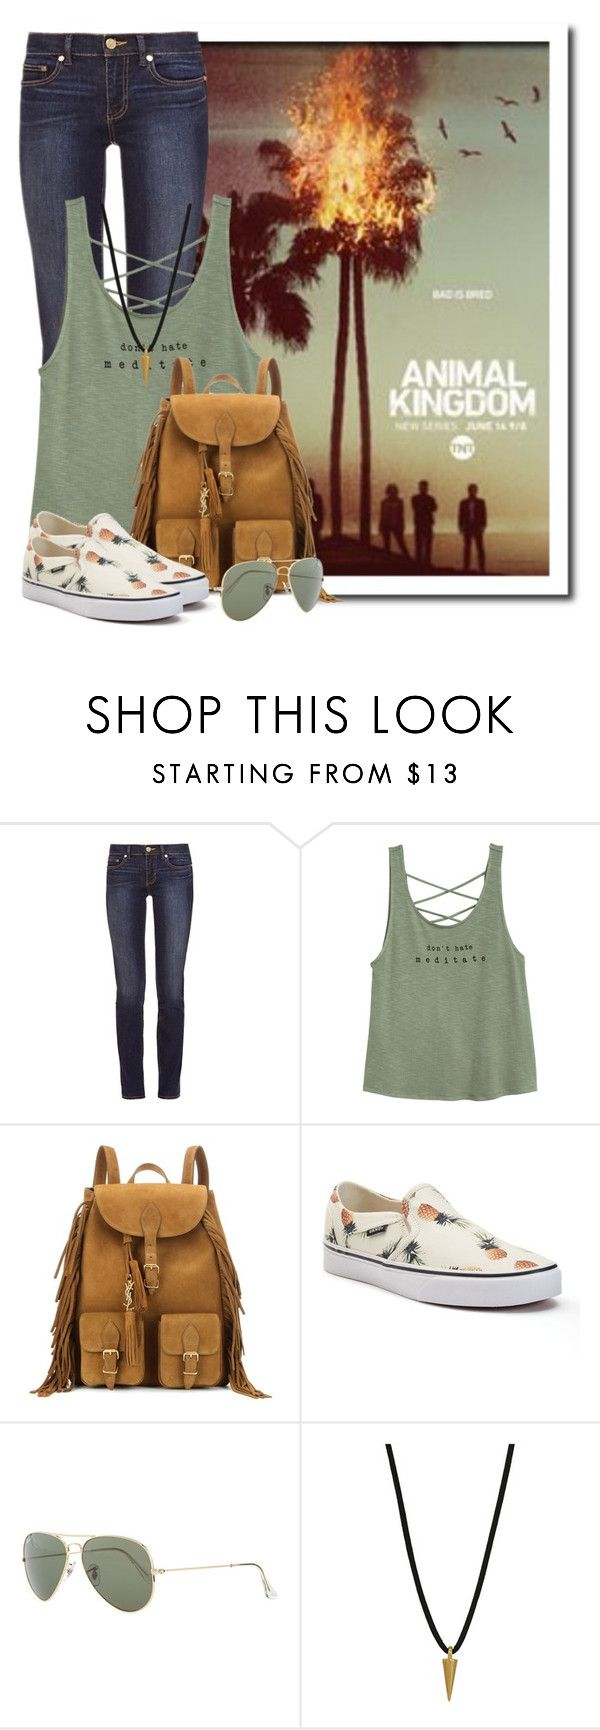 """Animal kingdom, Tuesdays at 9 on TNT"" by queenrachietemplateaddict ❤ liked on Polyvore featuring Tory Burch, Yves Saint Laurent, Vans, Ray-Ban, Dogeared, TV, tnt and animalkingdom"